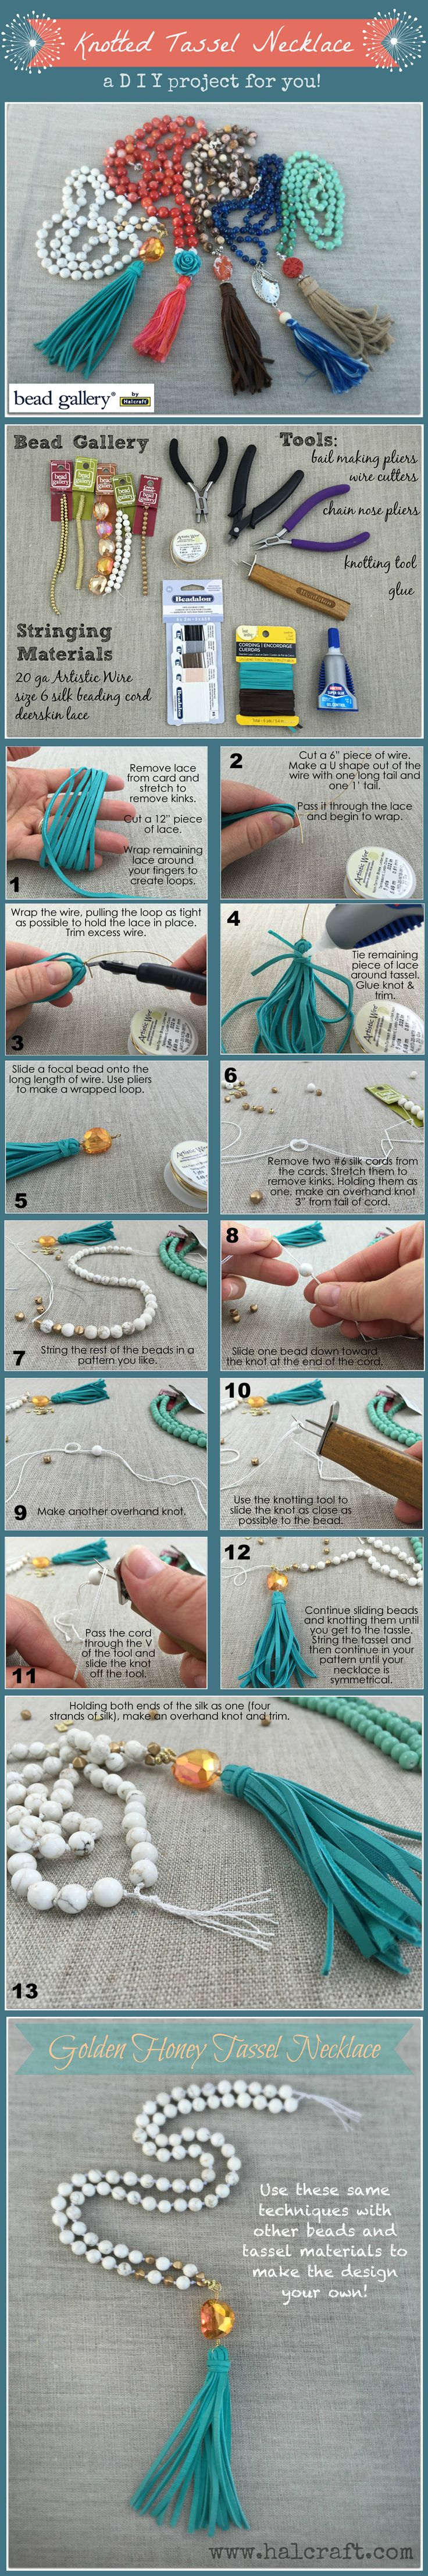 It's easy to create a trendy Knotted Tassel Necklace to match all your outfits with this DIY jewelry project how-to.